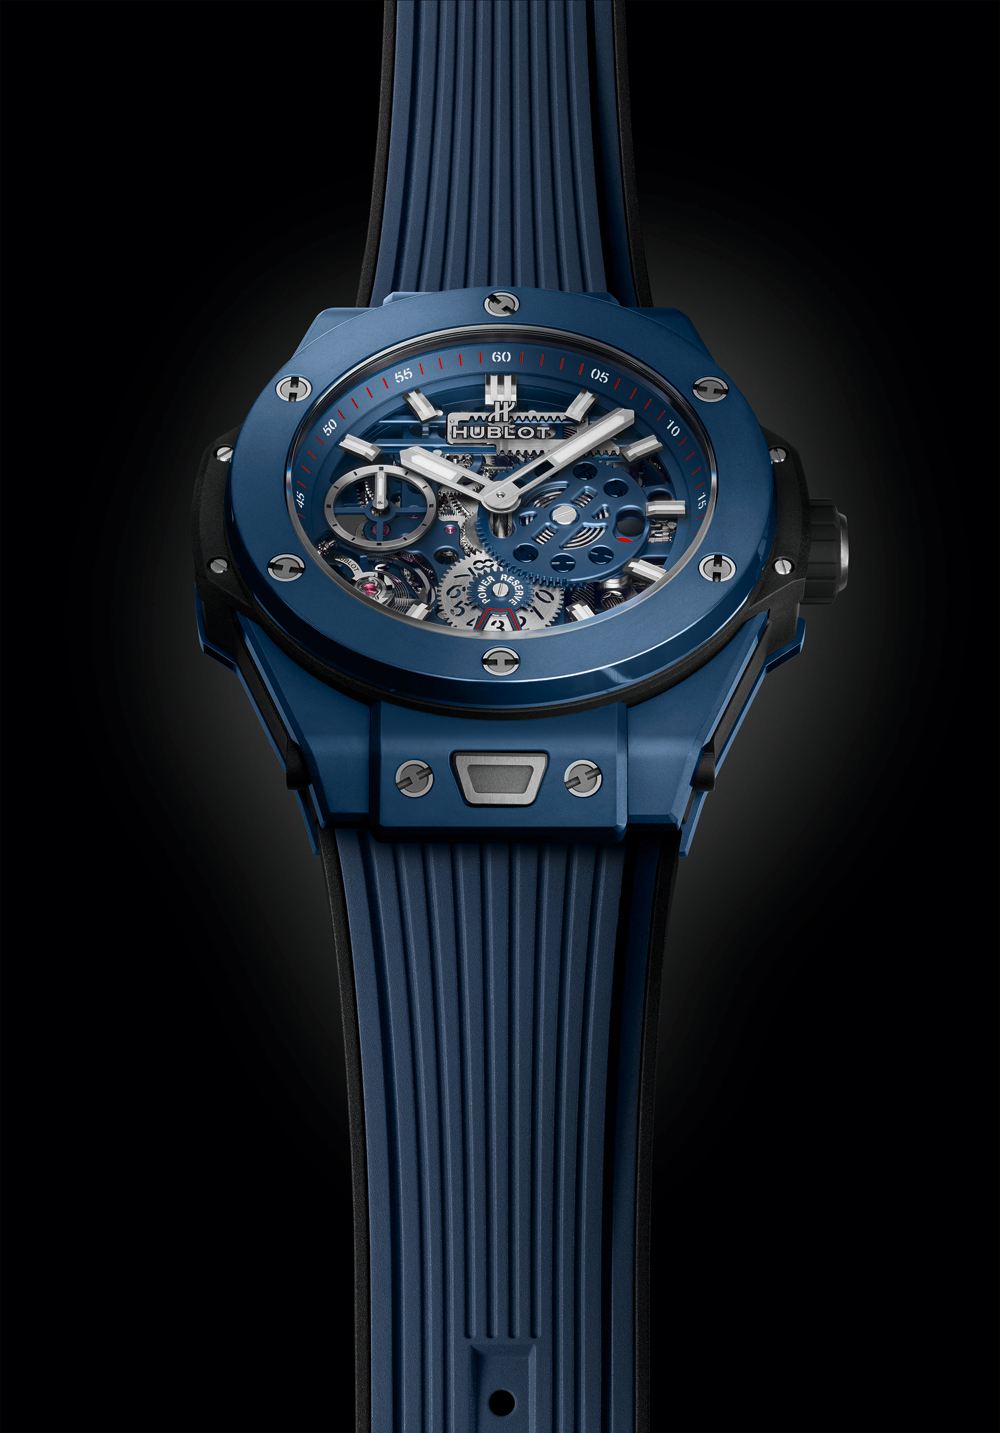 Hublot Big Bang Meca-10 10 Day Power Reserve Blue Ceramic